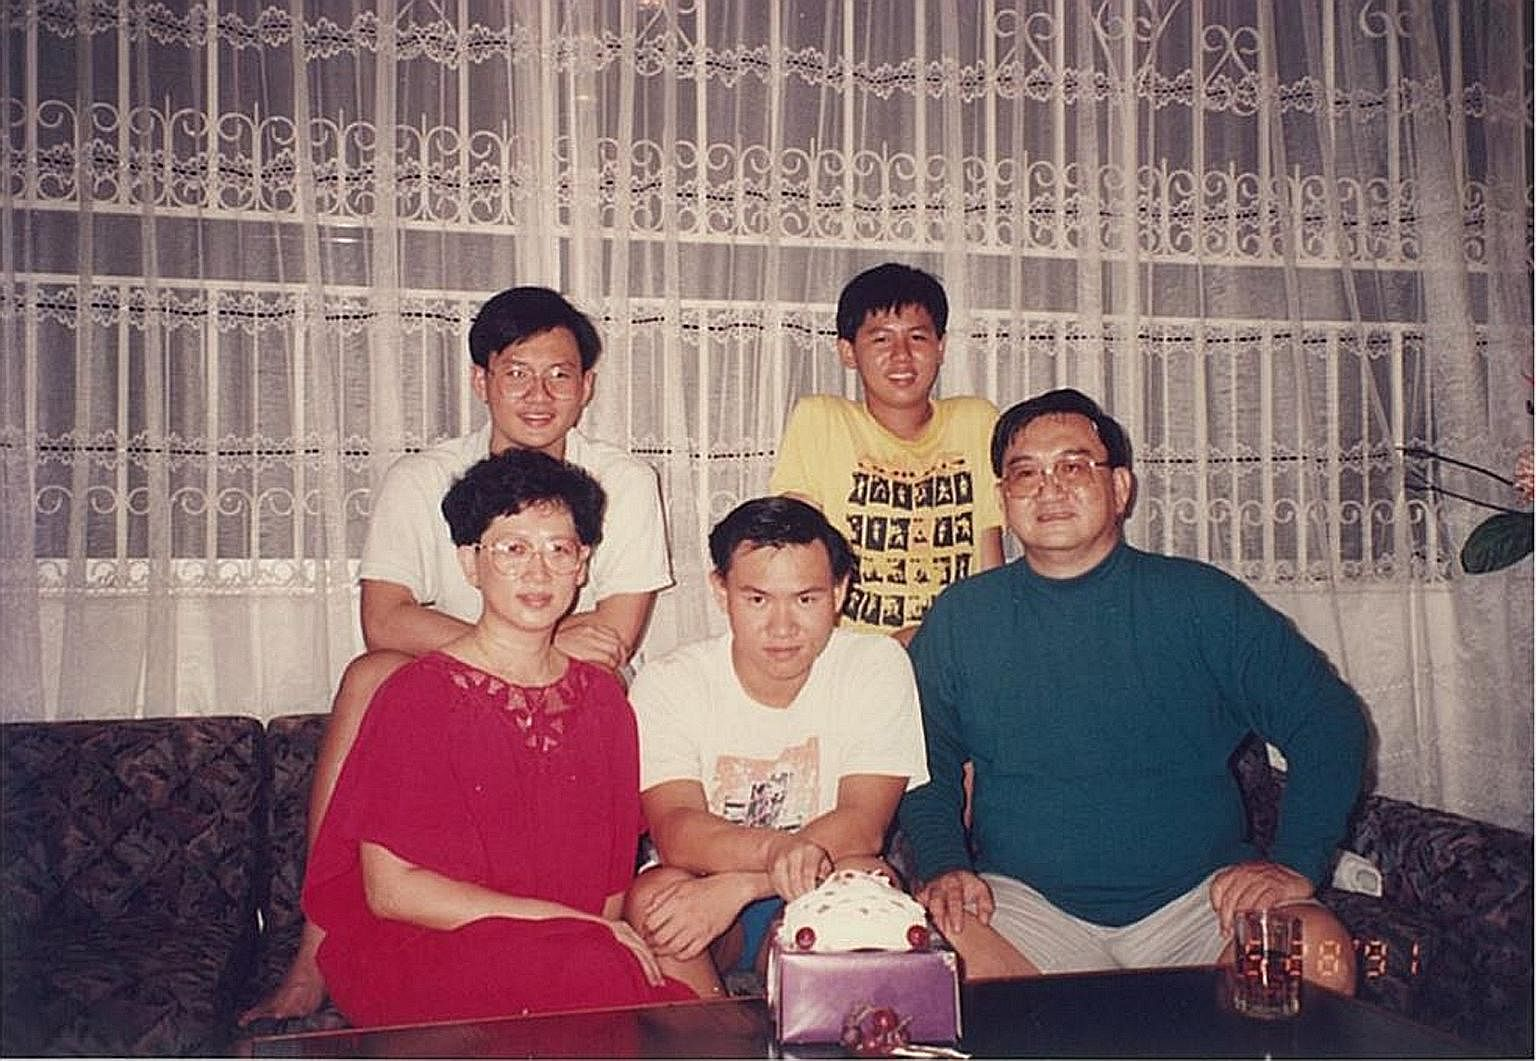 Mr Fu Shou Jeen (back row left) and Mr Fu Siang Jeen (first row centre) with their parents, Mr Fu Weng Leng and Madam Leow Fie Yin, and brother Tong Jeen. Brothers Fu Siang Jeen (above right) and Fu Shou Jeen are the only third-generation members fro